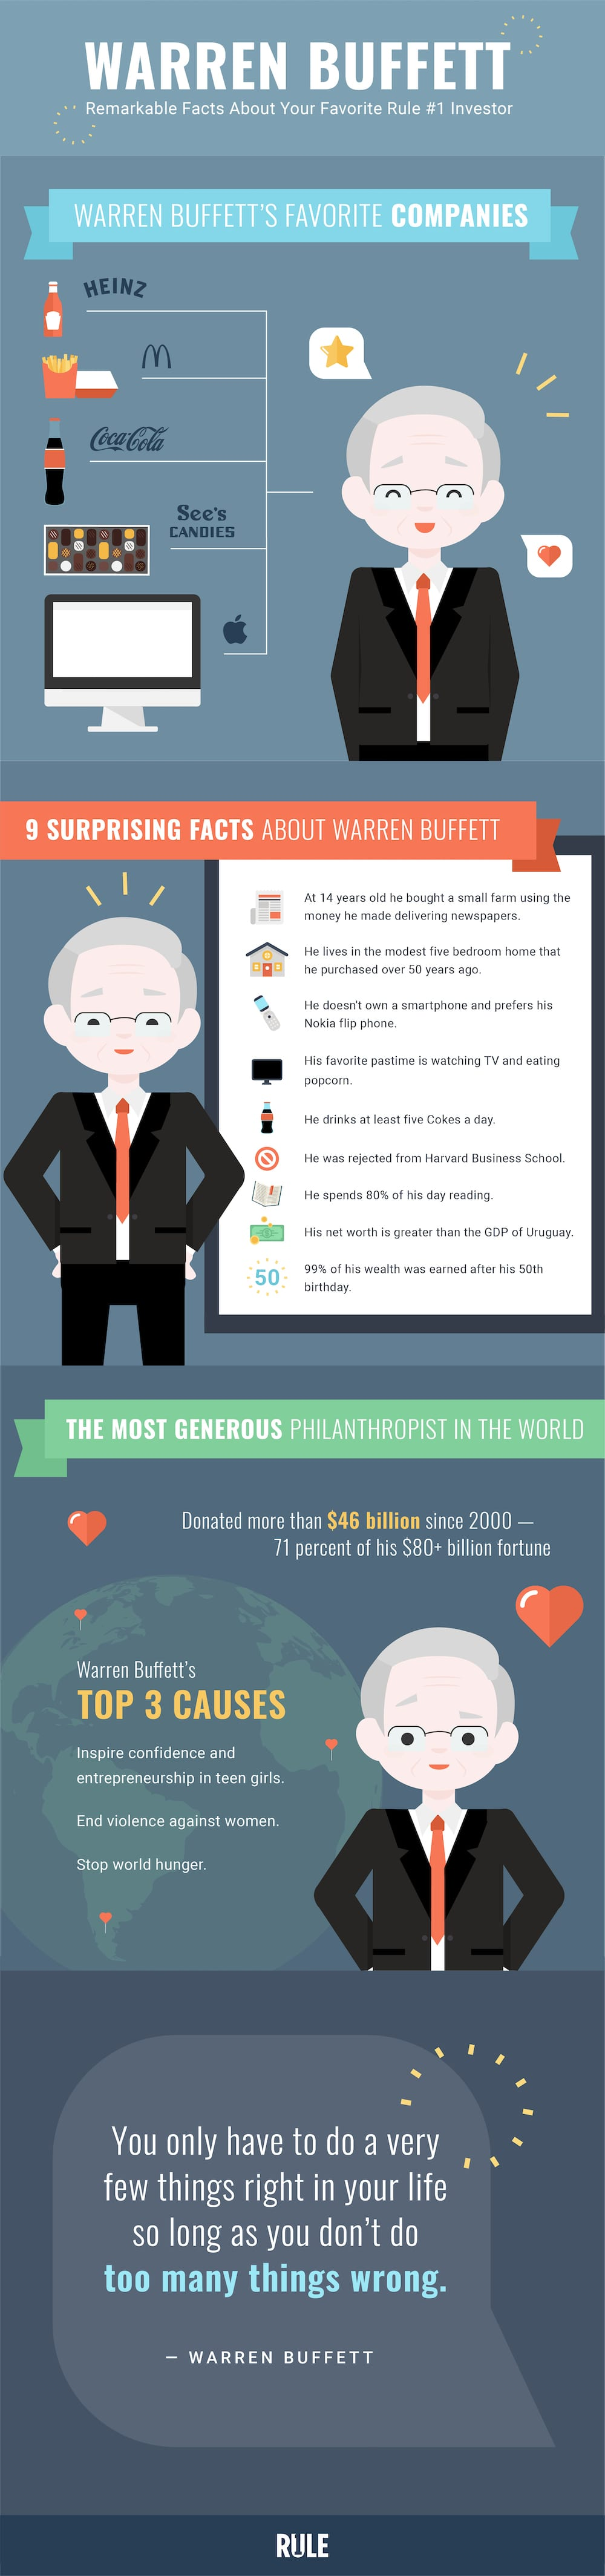 warren-buffett-facts-infographic